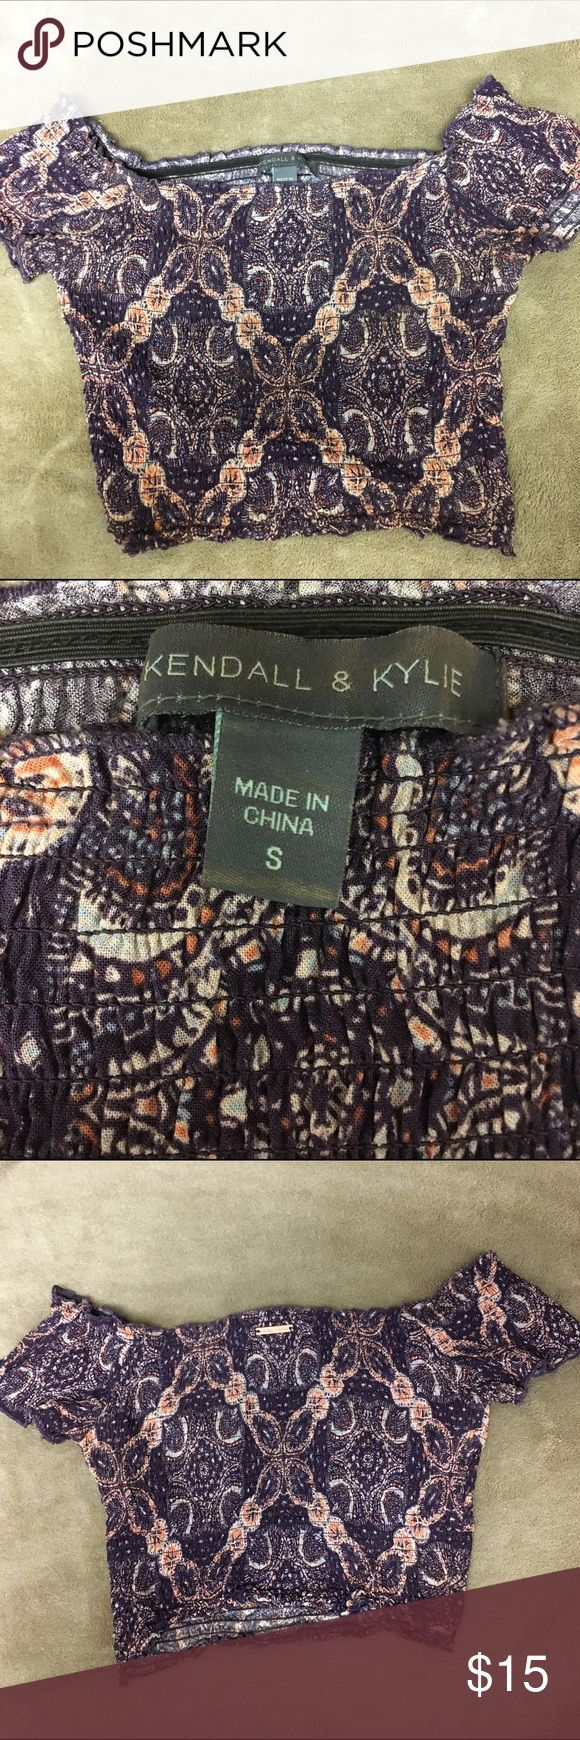 Kendall & Kylie crop top Kendall & Kylie crop top, stretchy material, purple paisley print, off the shoulder Kendall & Kylie Tops Crop Tops